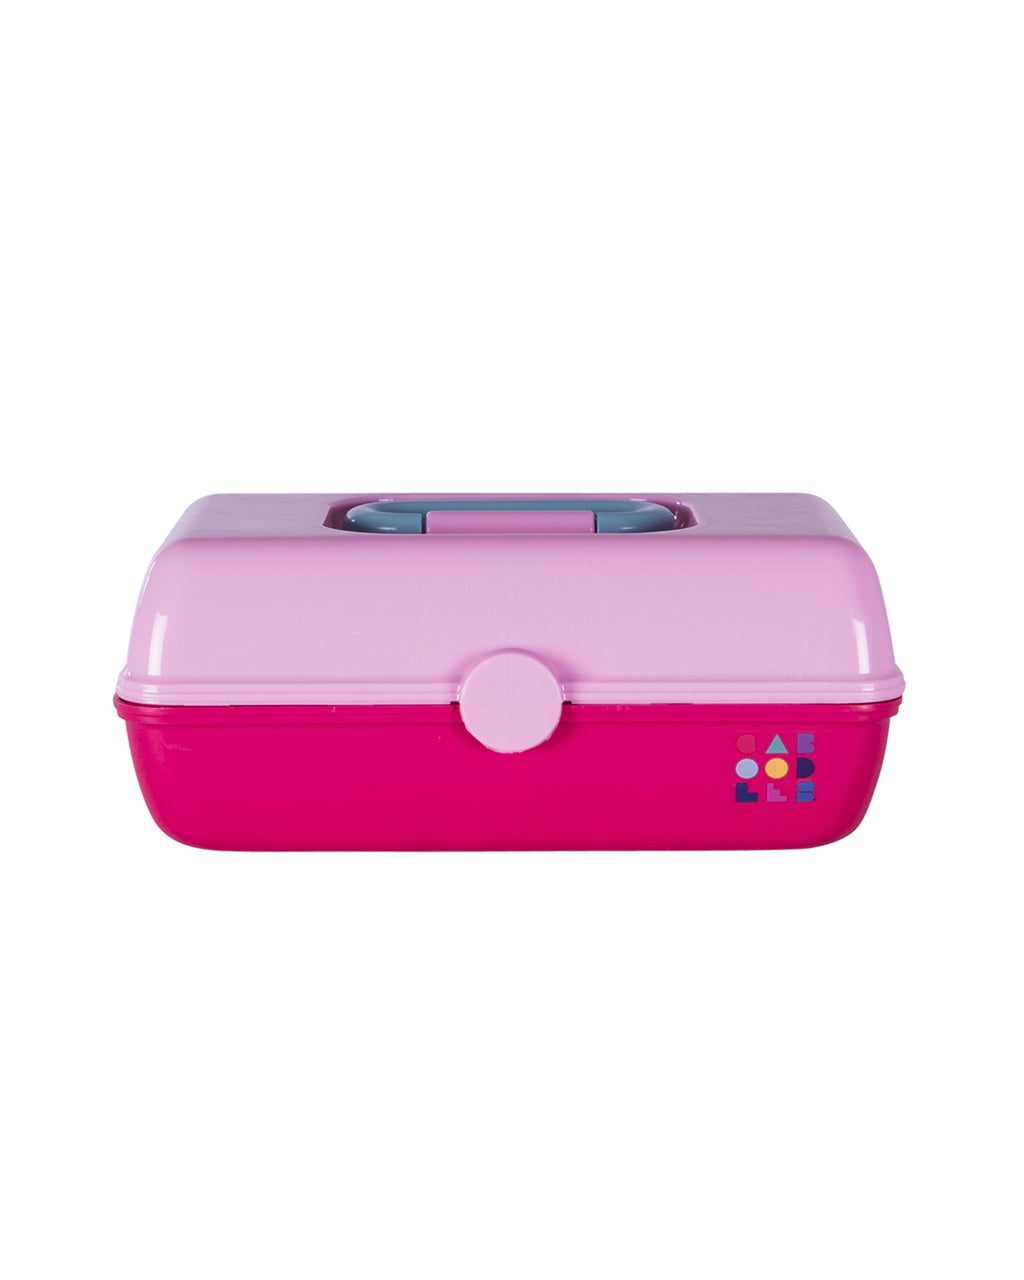 Small Caboodles Makeup Case - Light Pink & Hot Pink